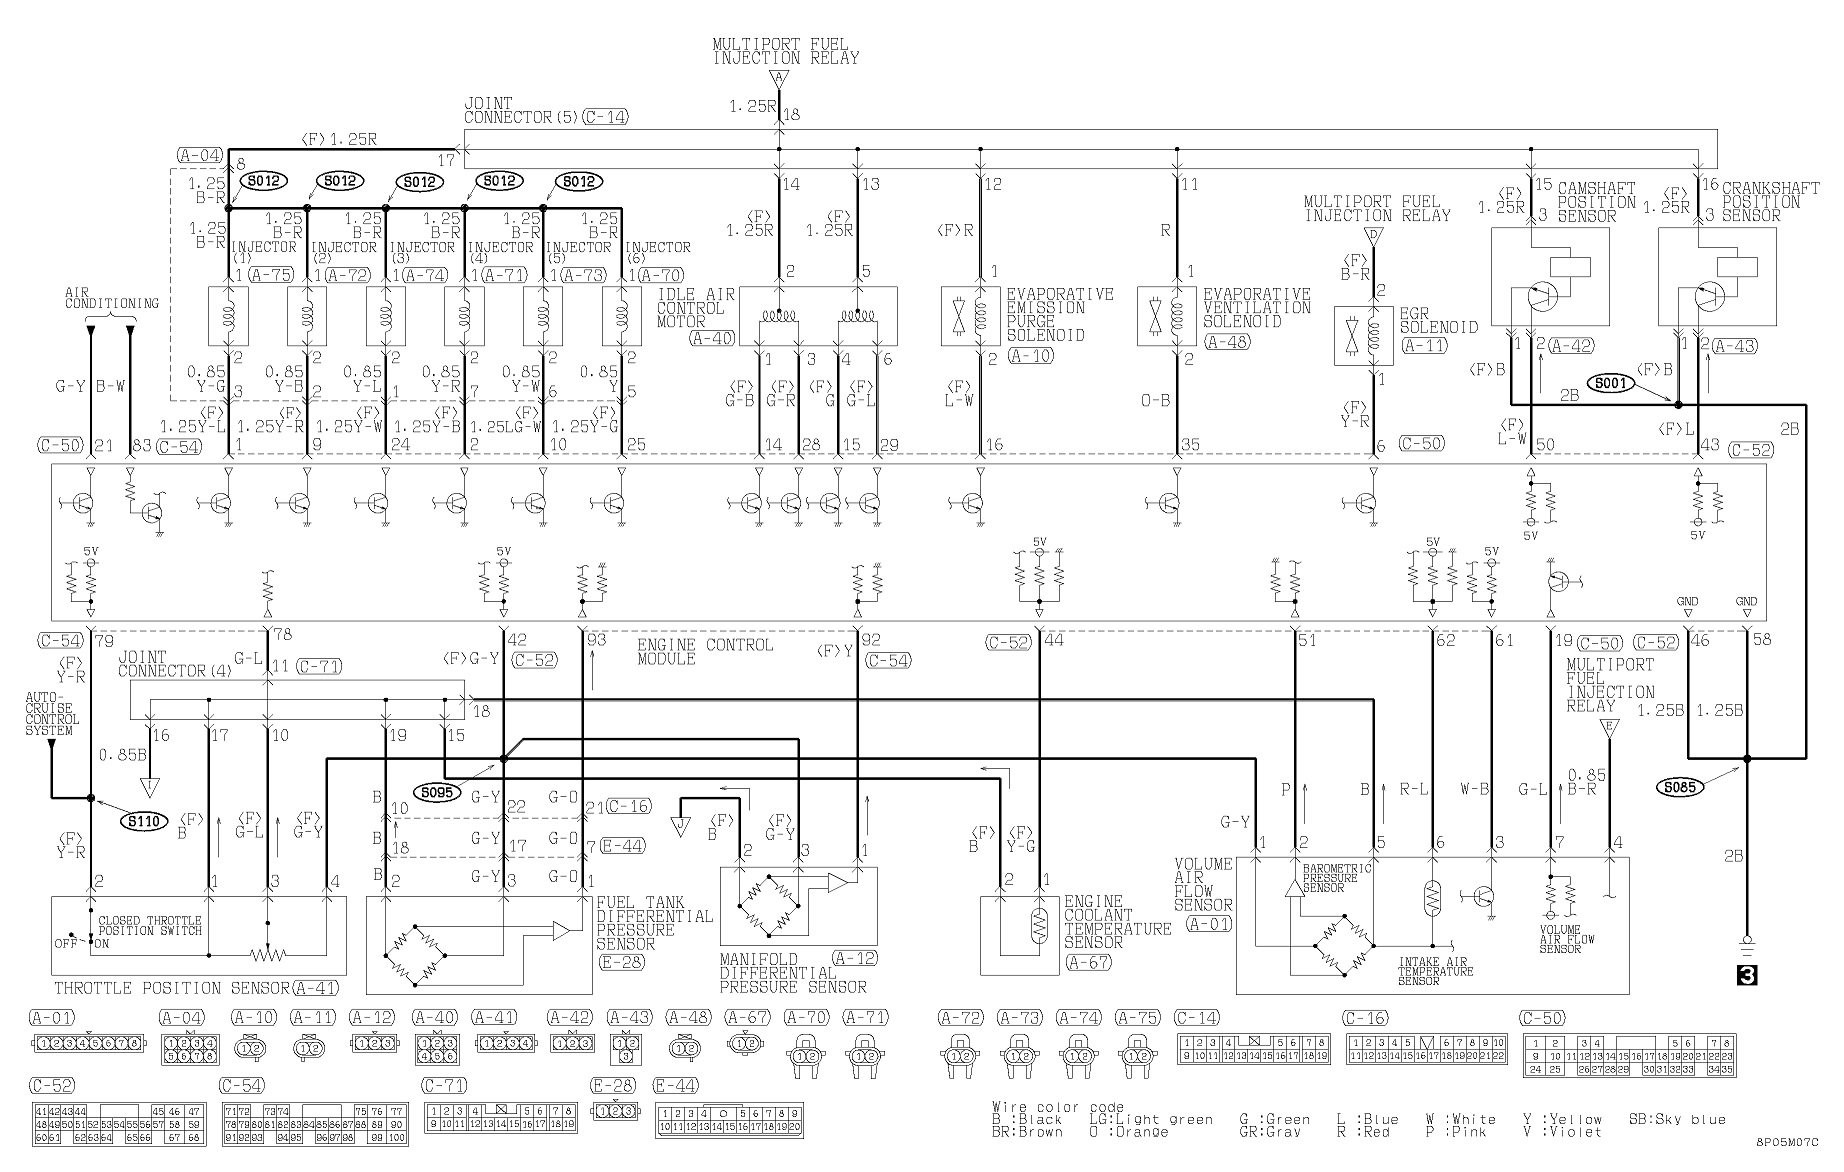 2003 mitsubishi montero sport engine diagram | service wiring diagram  library | service.kivitour.it  kivi tour 2 guida in carrozzina